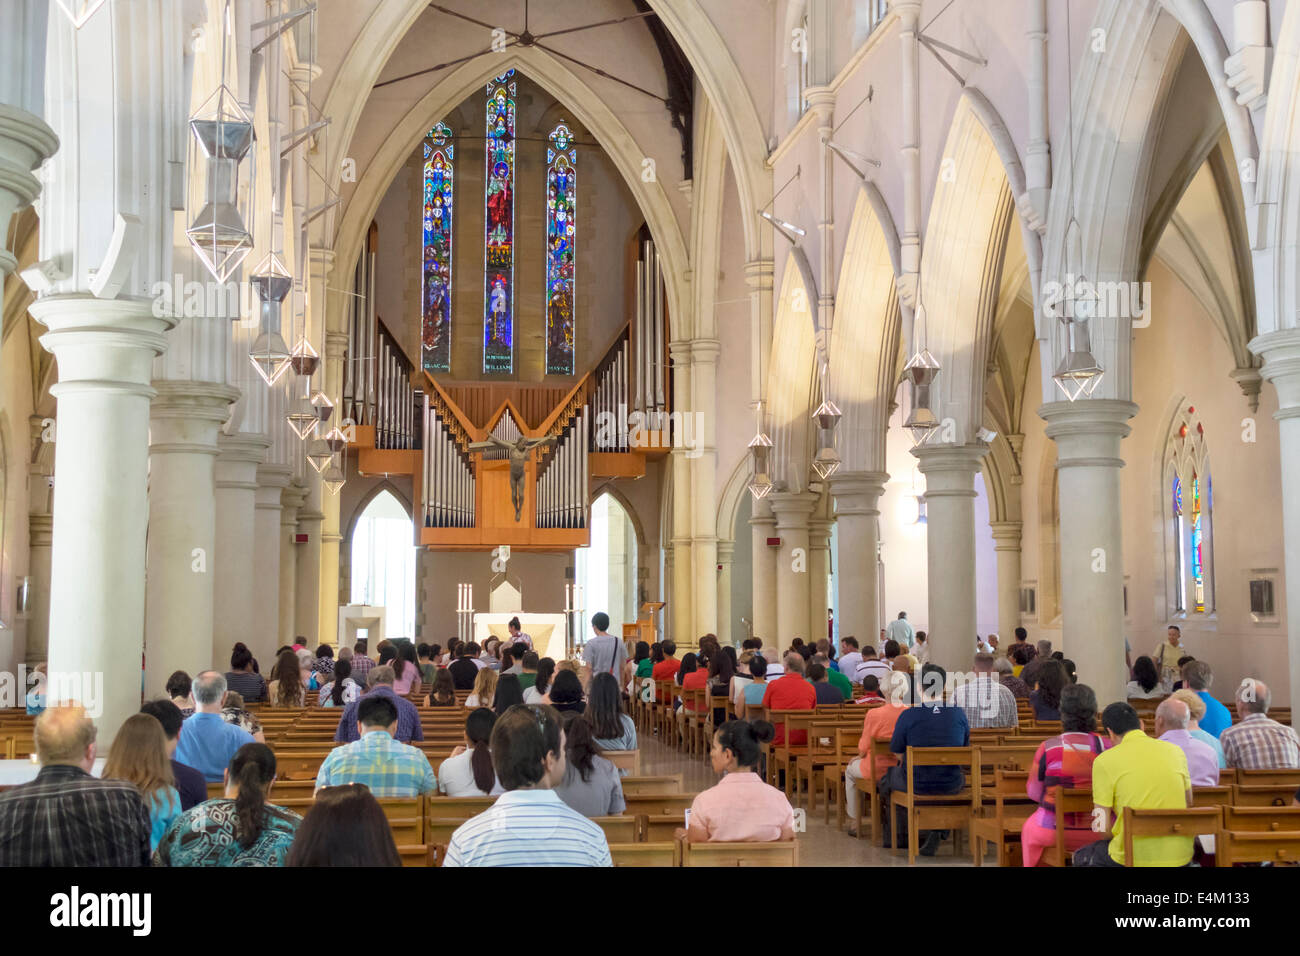 Brisbane Australia Queensland Central Business District CBD St. Stephen's Cathedral inside interior pews - Stock Image